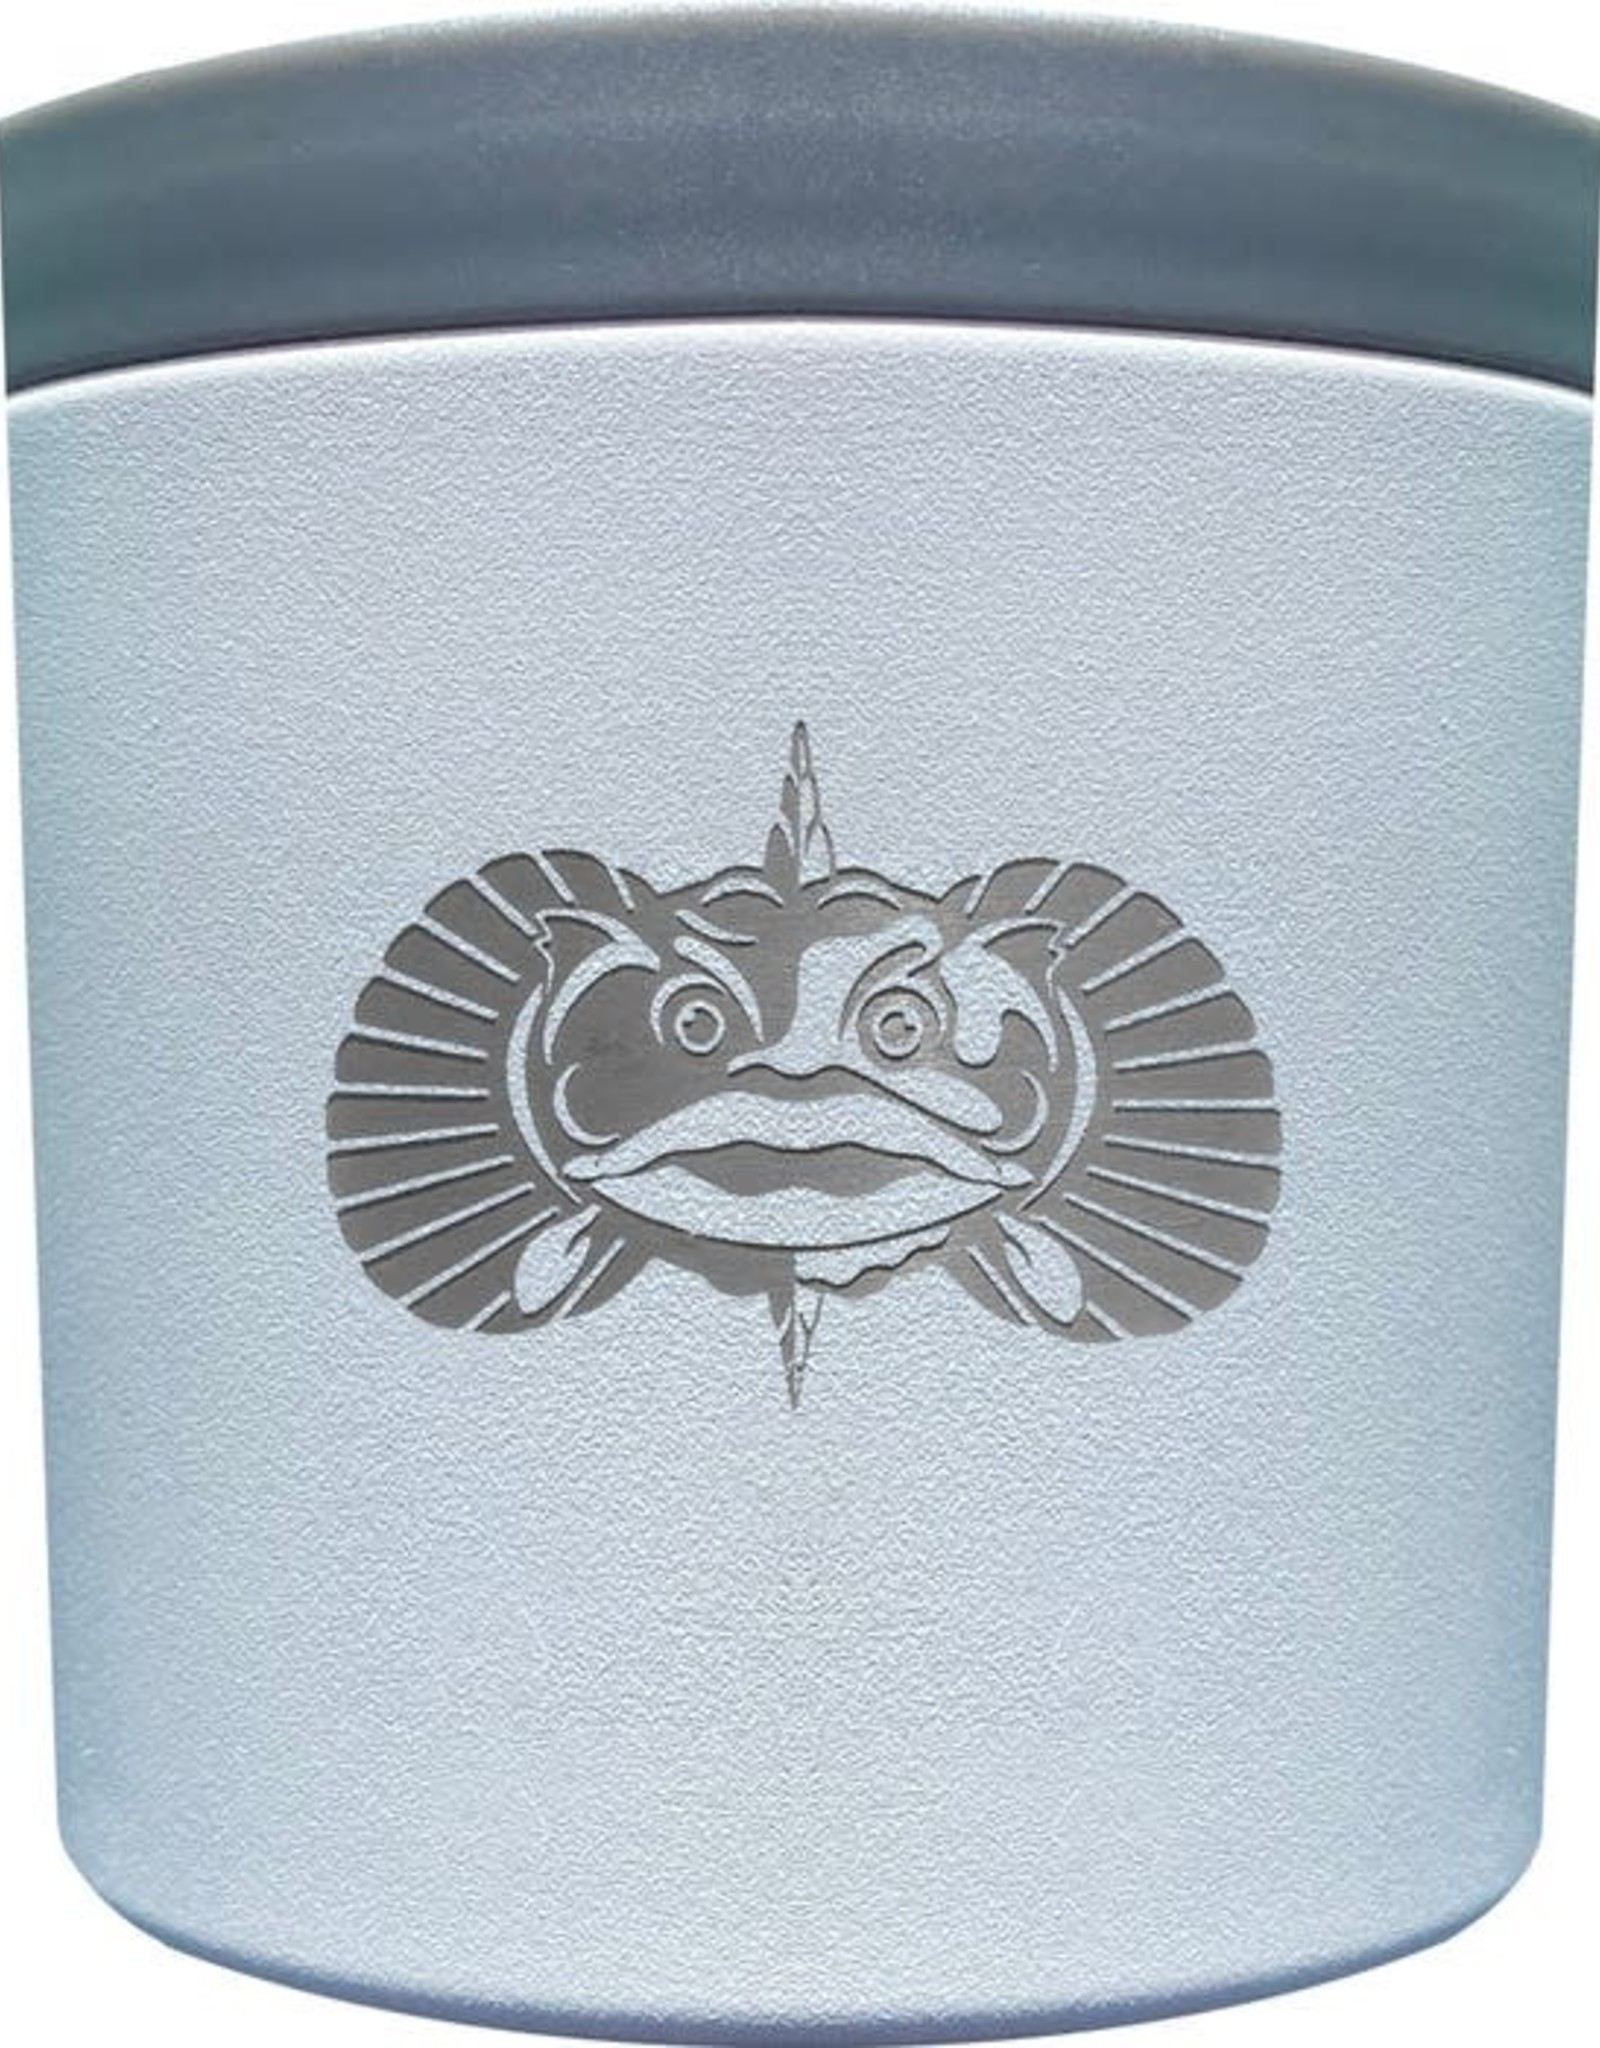 Toadfish Toadfish Anchor Non-Tipping Any Beverage Holder - White